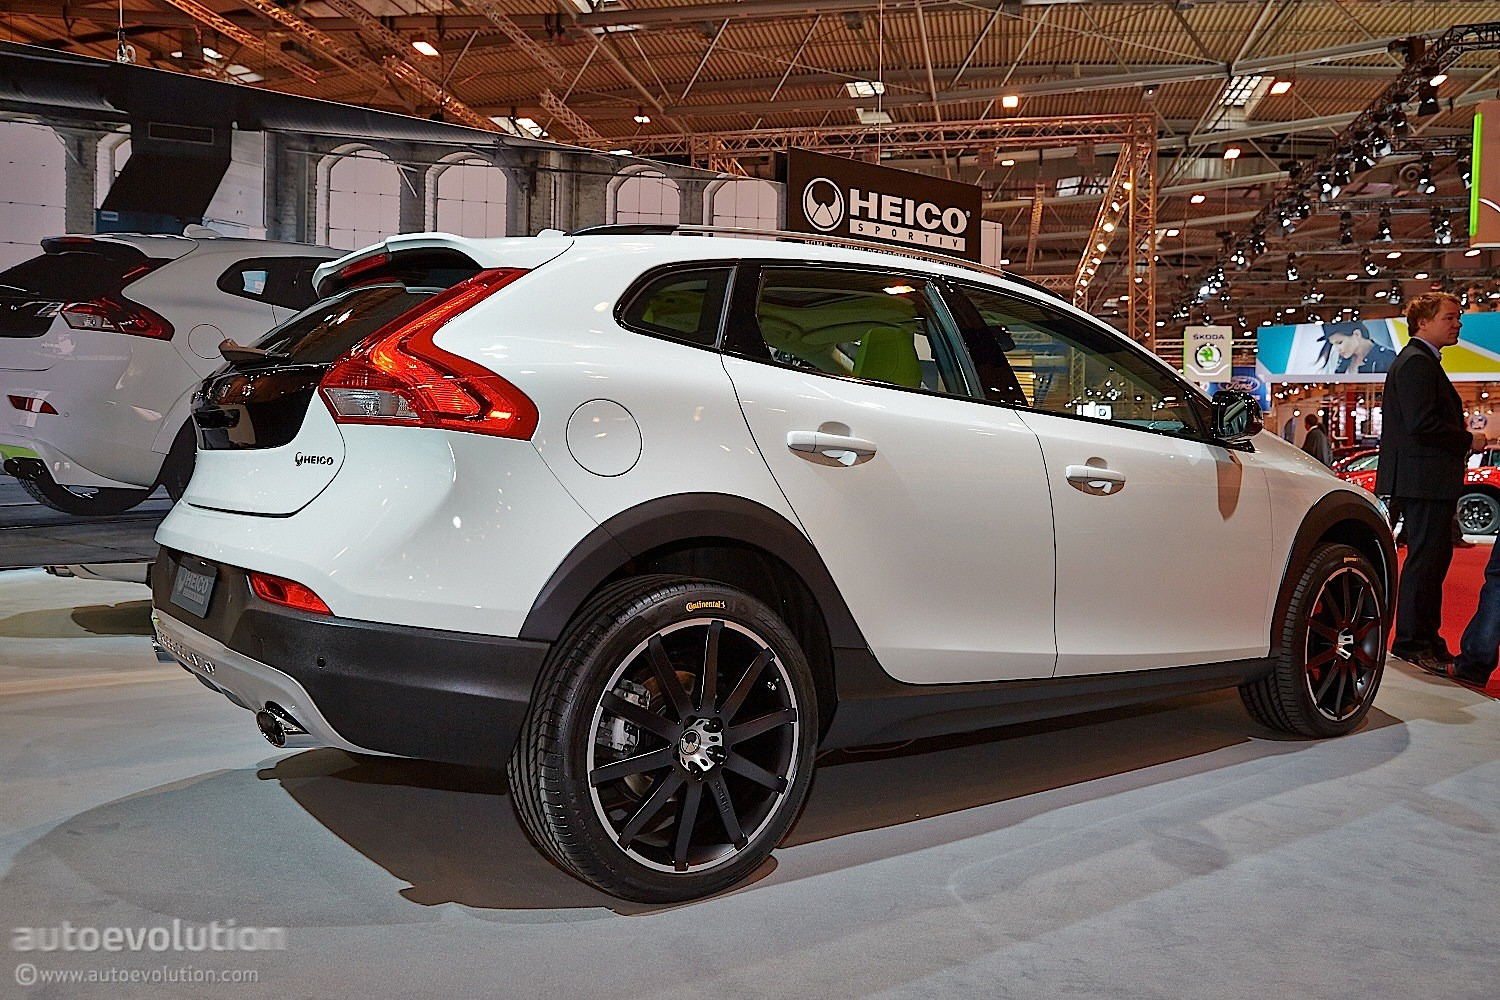 Volvo Xc90 Hybrid >> Volvo Tuner Heico Sportiv Brings a Trio of Swedes at Essen [Live Photos] - autoevolution